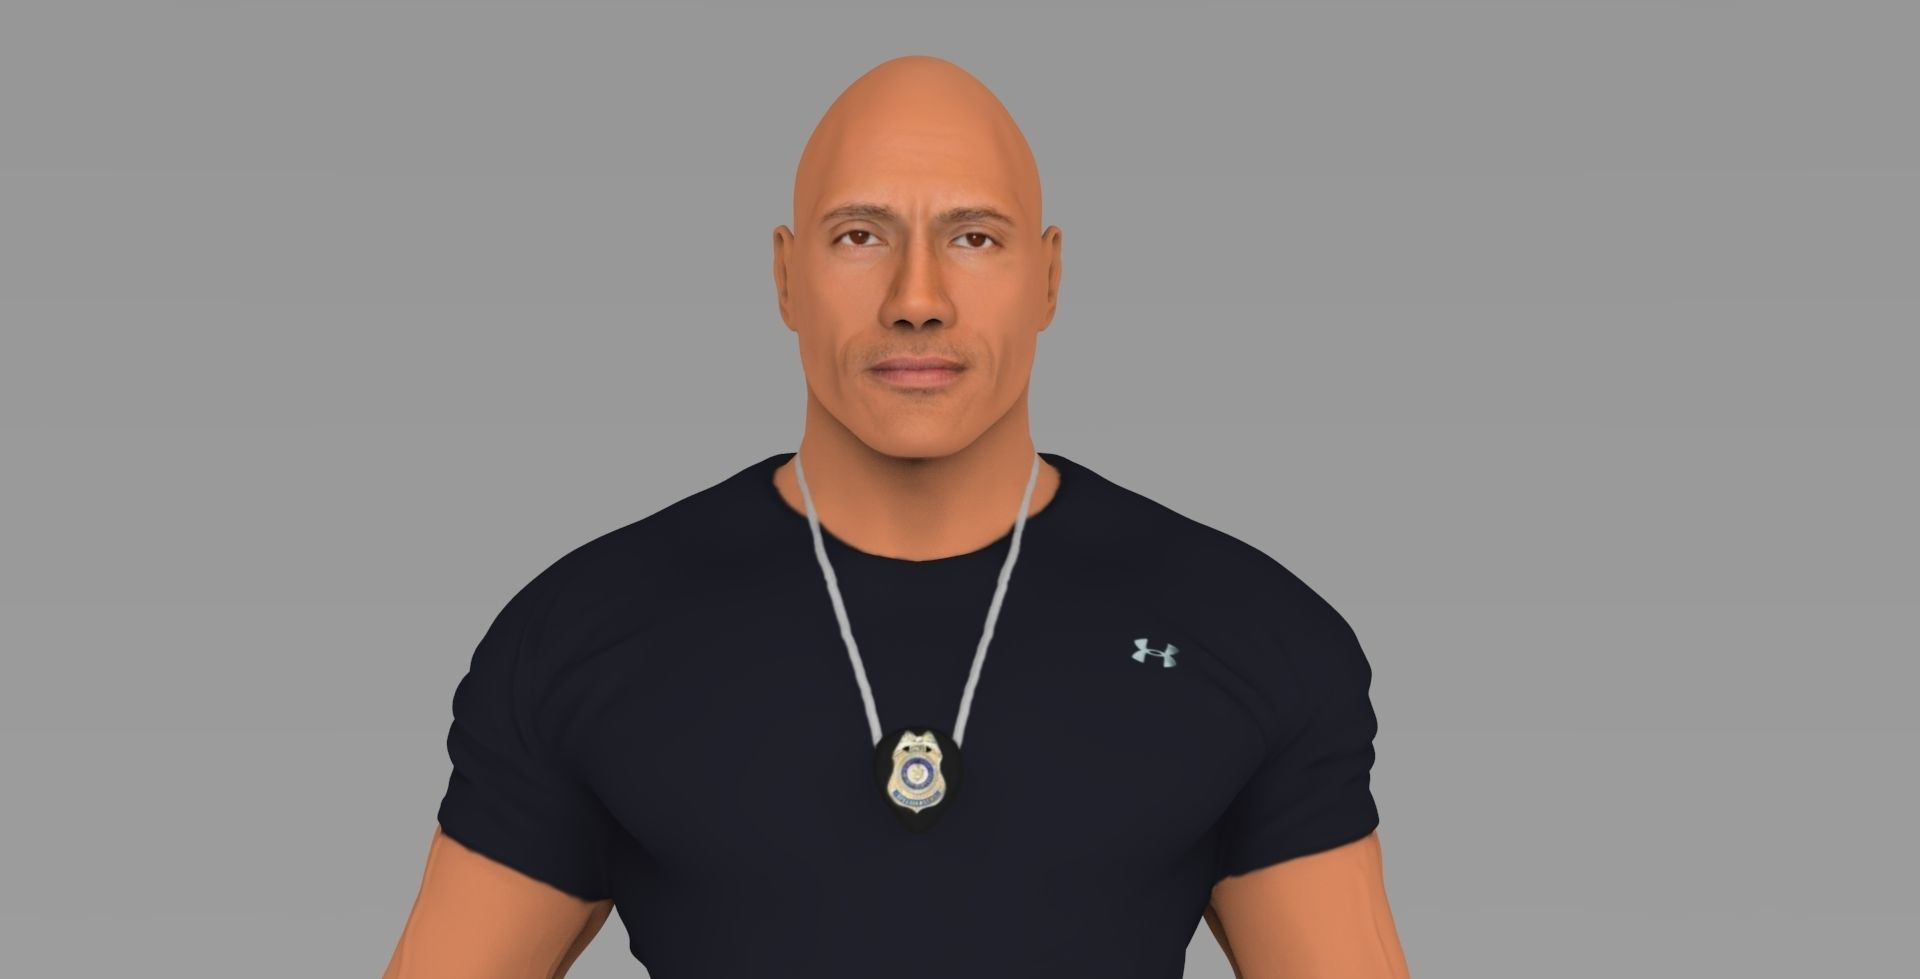 Dwayne Johnson Fast and Furious ready for full color 3D printing